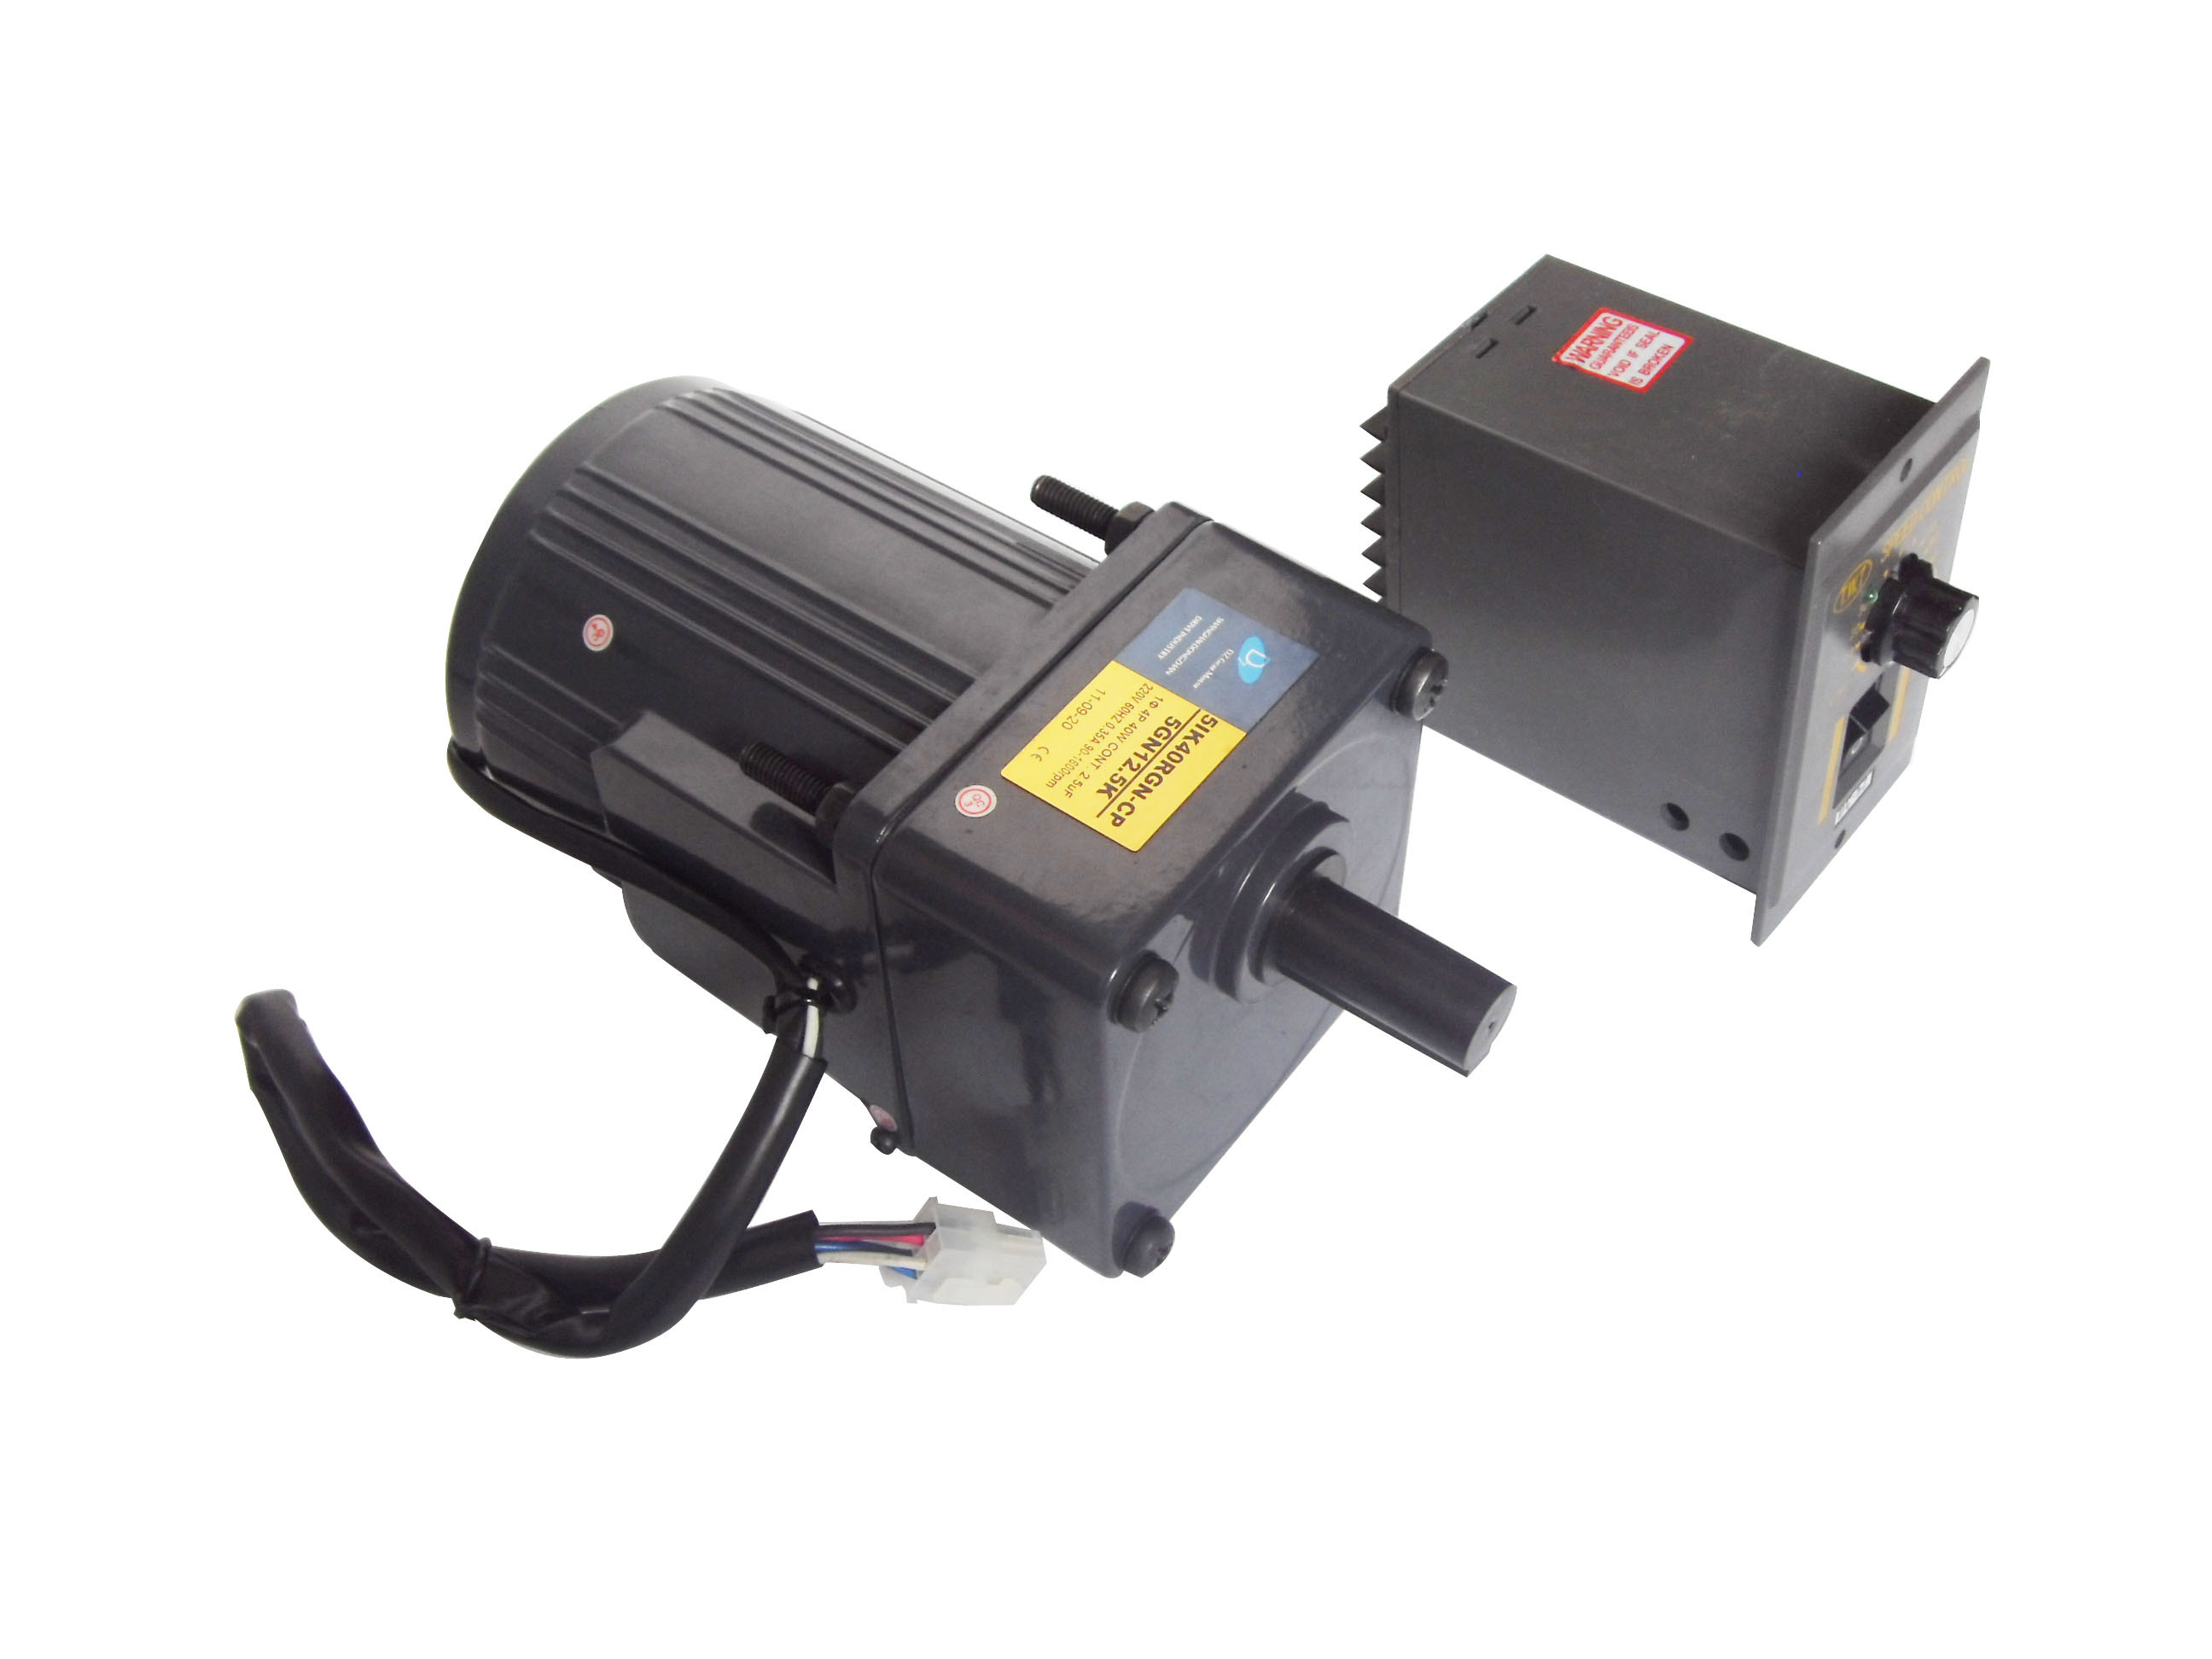 China dc motor worm gearbox dc gear motor supplier Speed control for ac motor